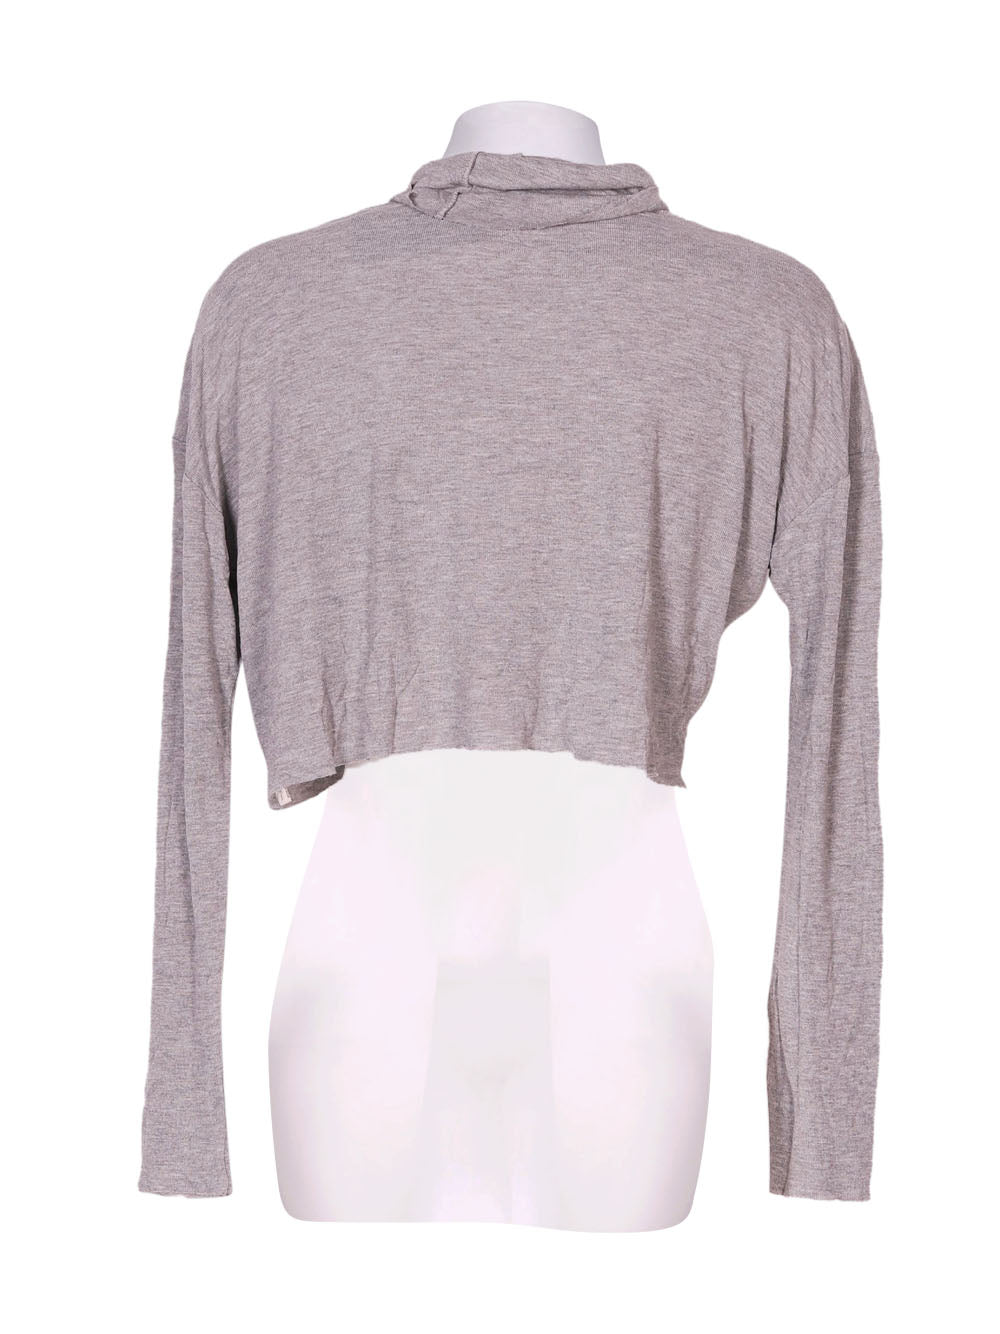 Back photo of Preloved Oysho Grey Woman's long sleeved shirt - size 10/M